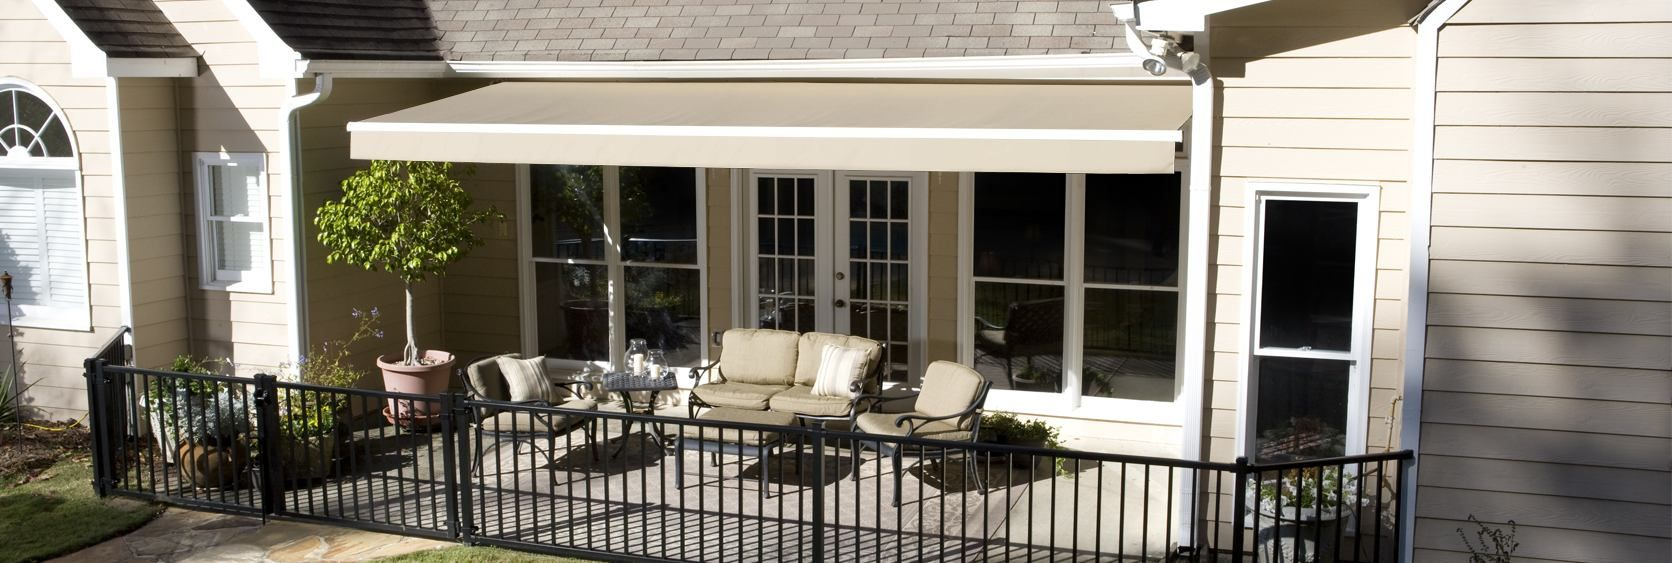 Introducing Our New Line Of Retractable Awnings From Solair Buy Now And Get 20 Off Plus Half Off On Installation In Ground Pools Above Ground Pool House